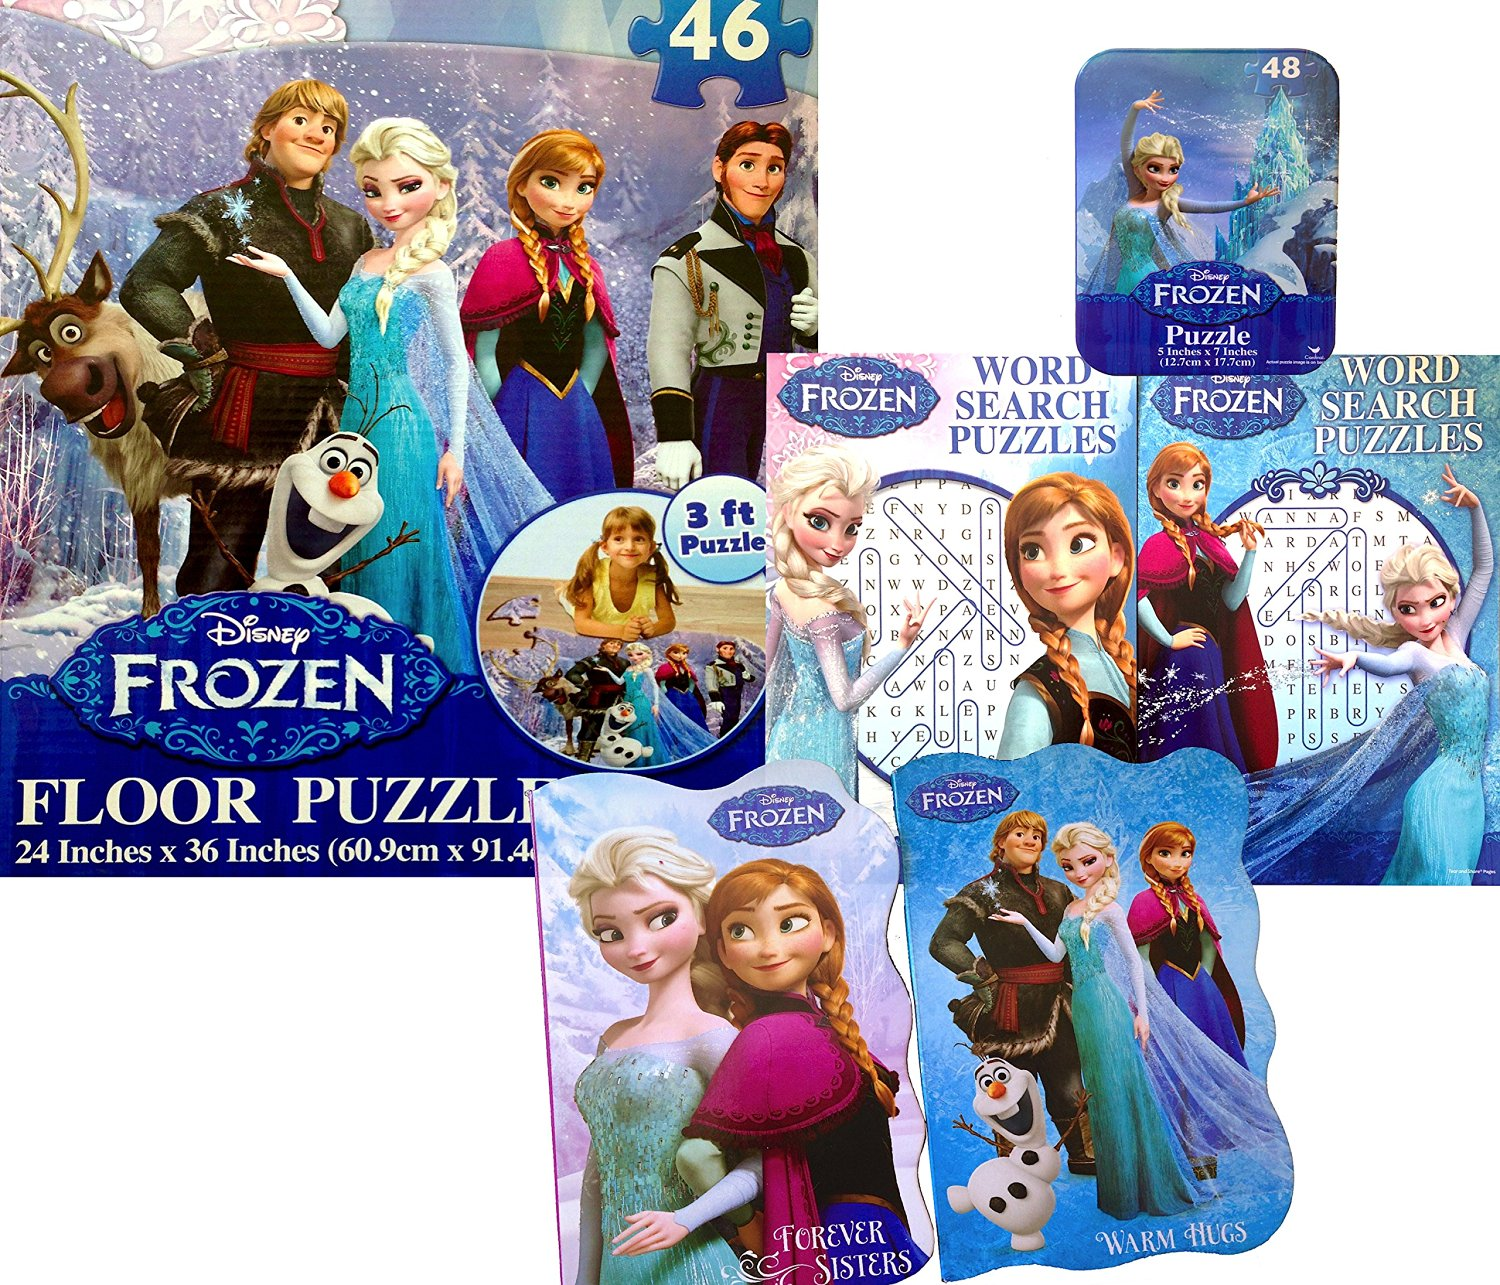 Disney Frozen Floor Puzzle 3ft Puzzle with Set of 2 Word Search Books 2 Story Time Books and Small on the Go Puzzle Disneyland Fun , Daycare, Schools